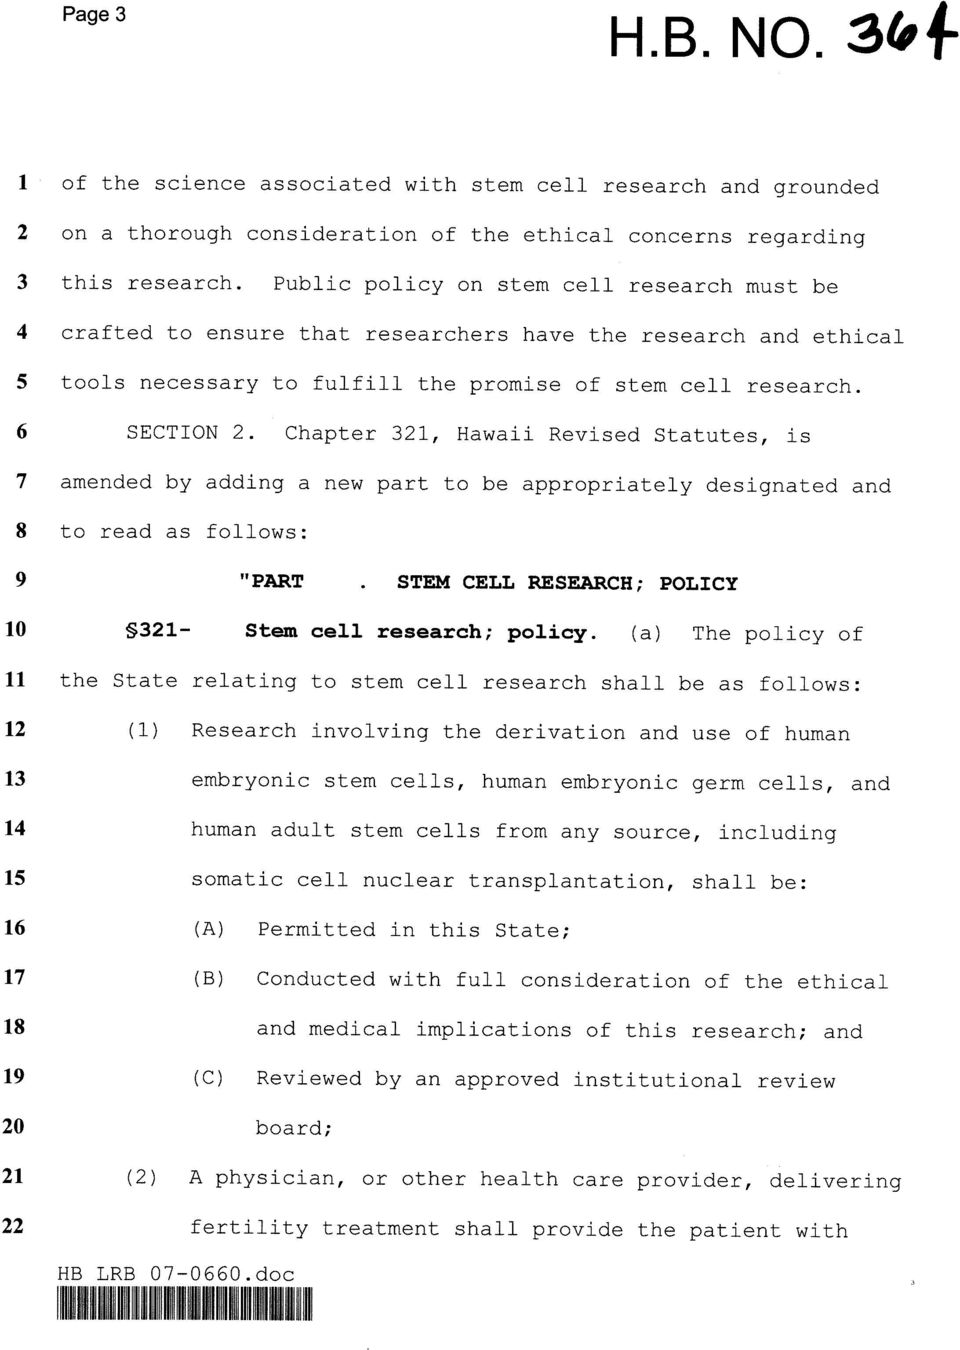 "Chapter 321, Hawaii Revised Statutes, is amended by adding a new part to be appropriately designated and to read as follows: "" PART. STEM CELL RESEARCH; POLICY (5321- Stem cell research; policy."